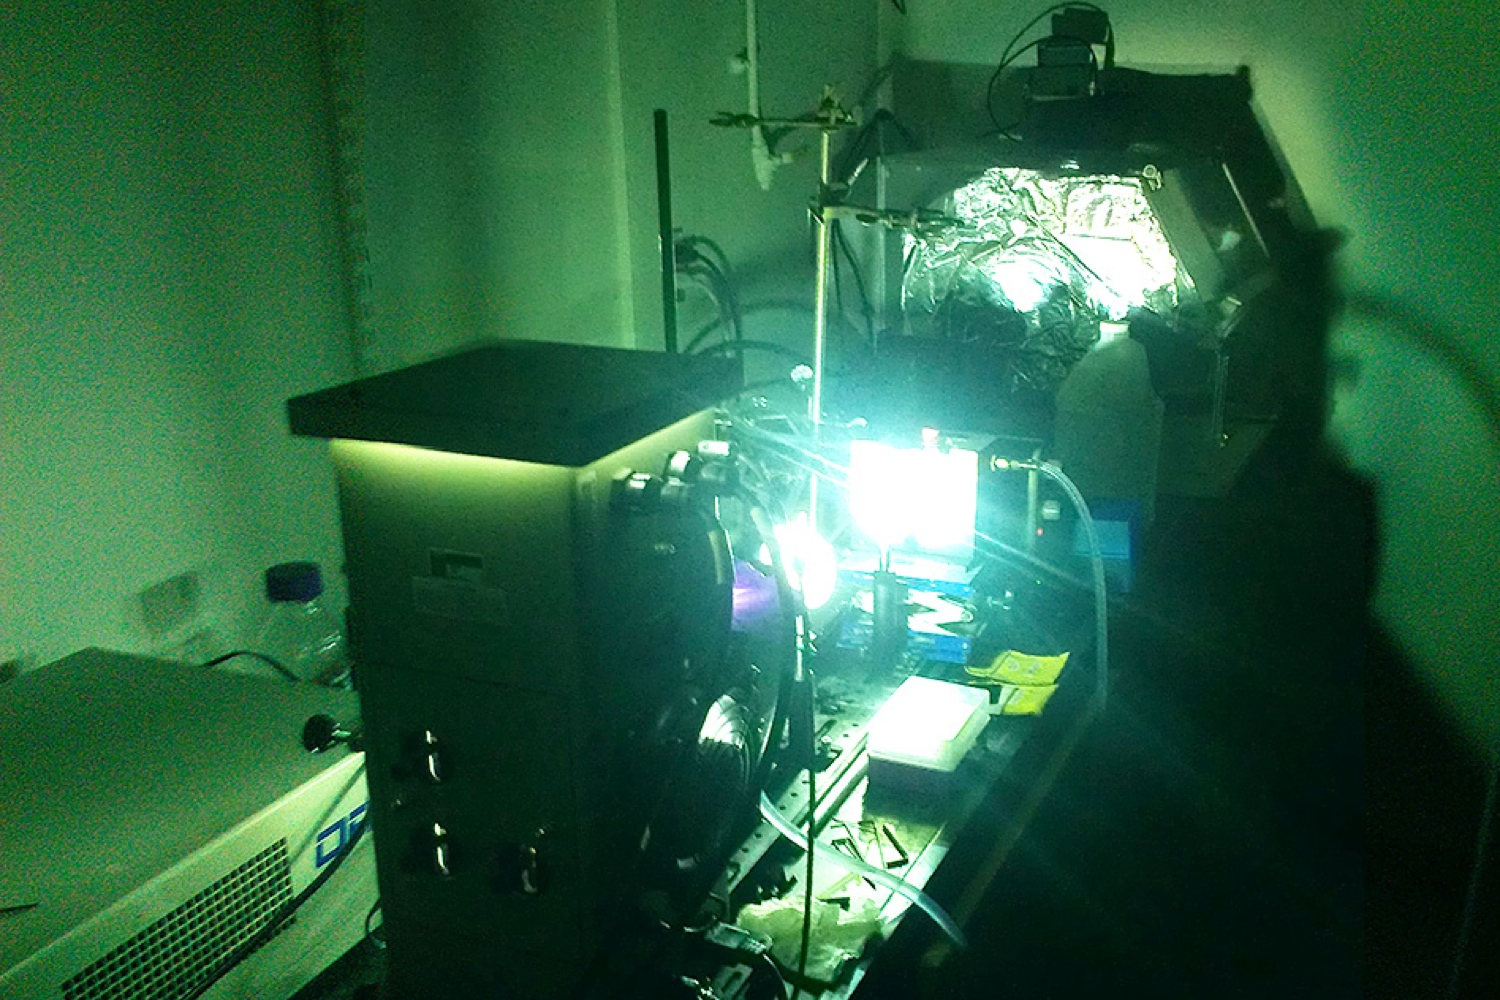 A powerful arc lamp is used to simulate sunlight on a sample of photoswitchable molecules, driving structural changes at the molecular level. A portion of the light's energy is stored with each structural change. The progress of these changes can be tracked by monitoring the molecules' optical properties.